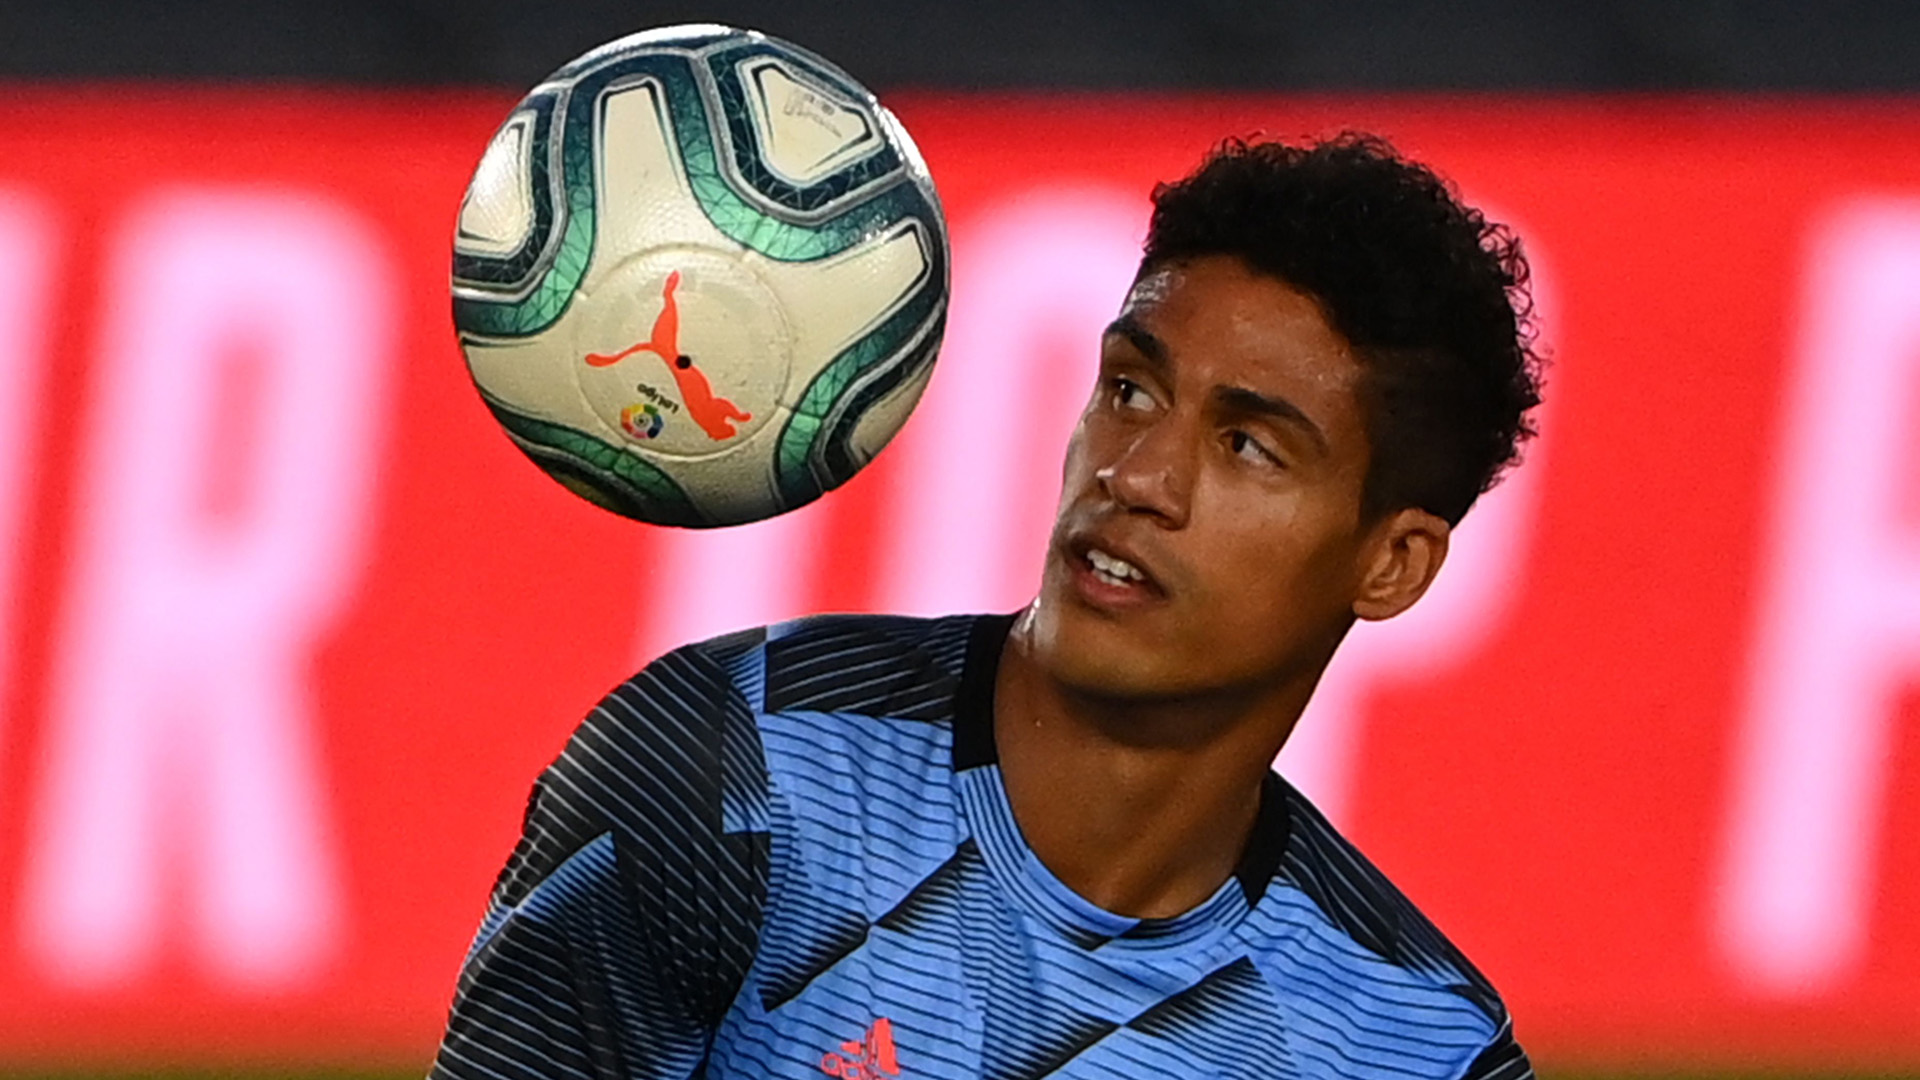 Varane has agreement with Man Utd until 2026 as talks with Real Madrid continue